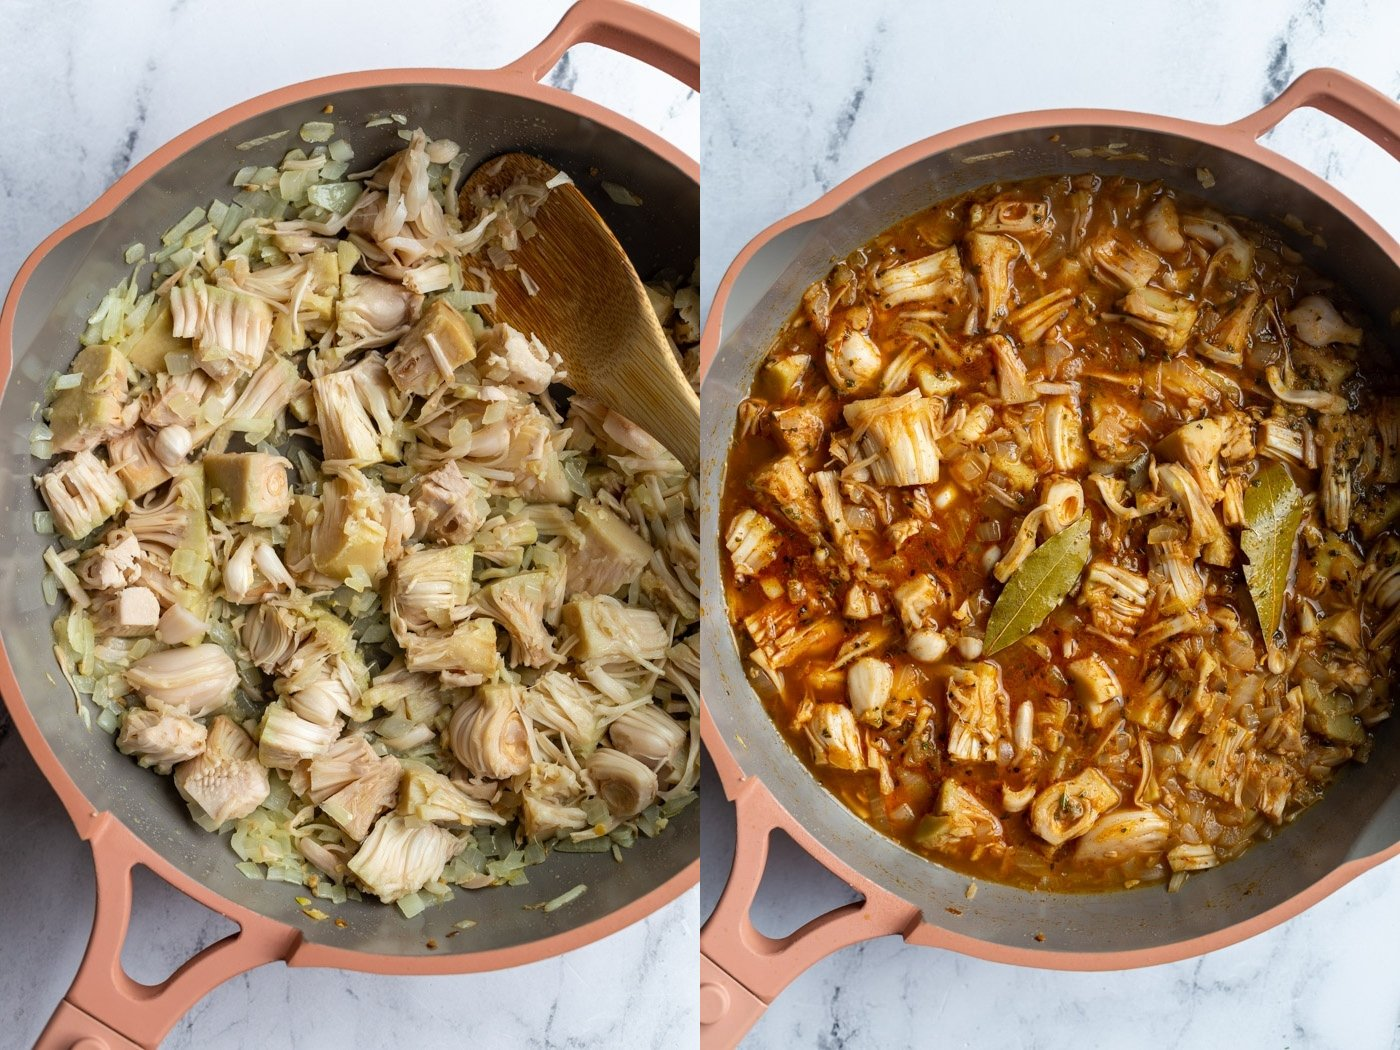 side by side images: left image is jackfruit in a pink skillet with onion. right image is broth and spices added to the skillet with the jackfruit